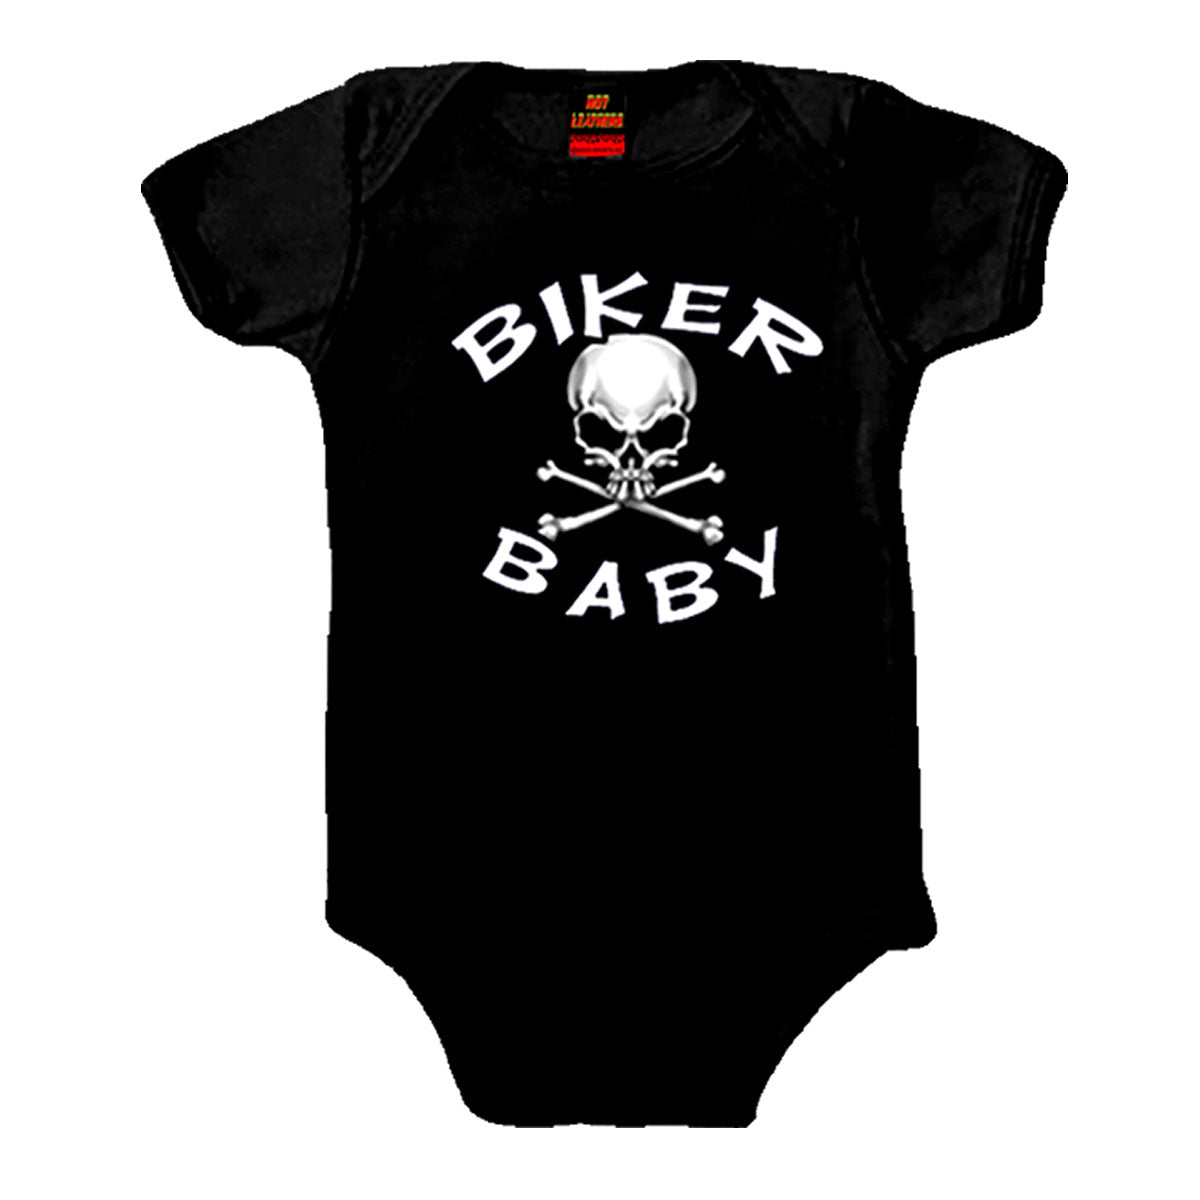 Hot Leathers Biker Baby Skull Bodysuit